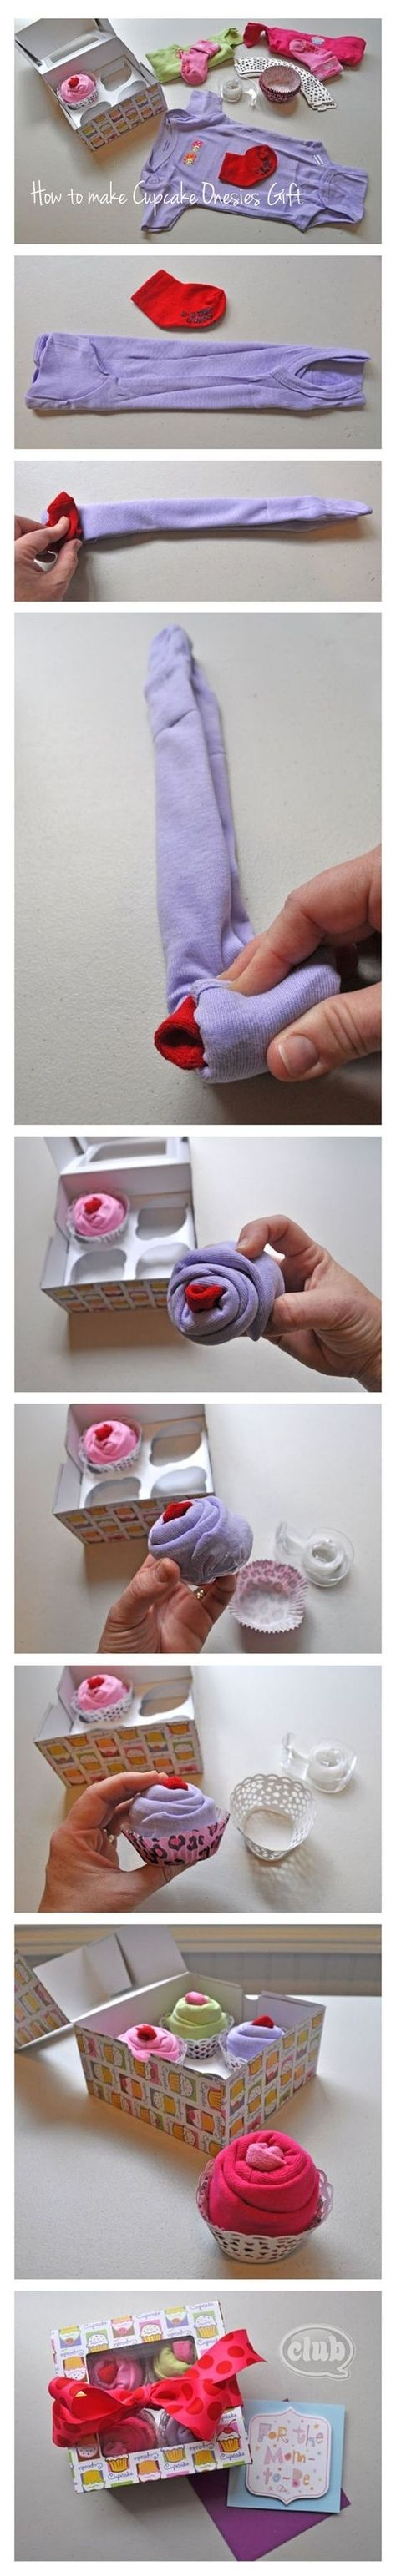 Baby Sock Cupcakes...these BEST Baby Shower Ideas!